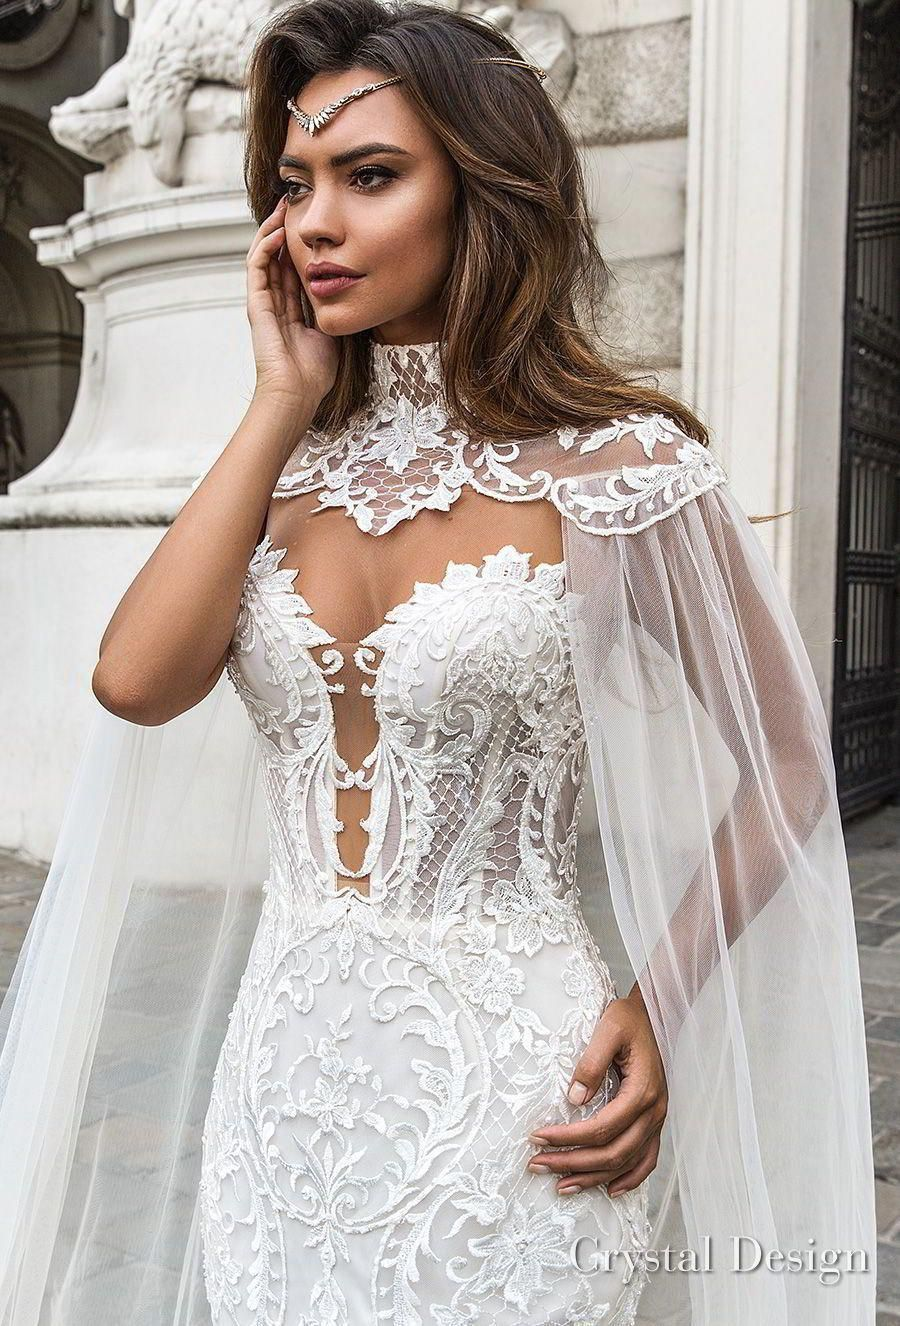 5001b49099 crystal design 2018 sleeveless strapless deep plunging sweetheart neckline  full embellishment elegant mermaid wedding dress sheer button back chapel  train ...